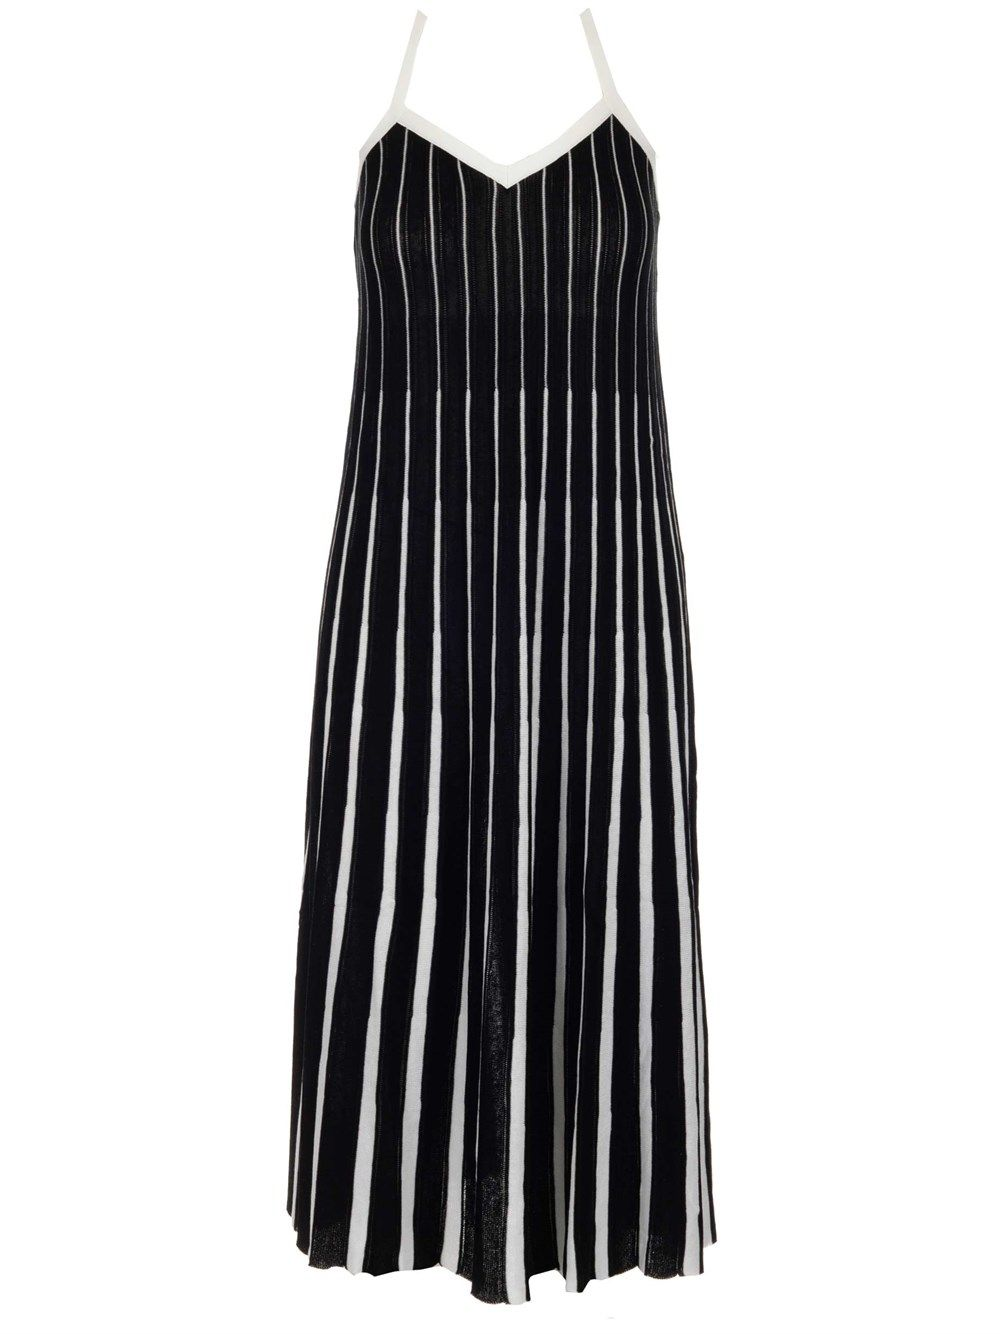 Red Valentino RED VALENTINO WOMEN'S BLACK OTHER MATERIALS DRESS